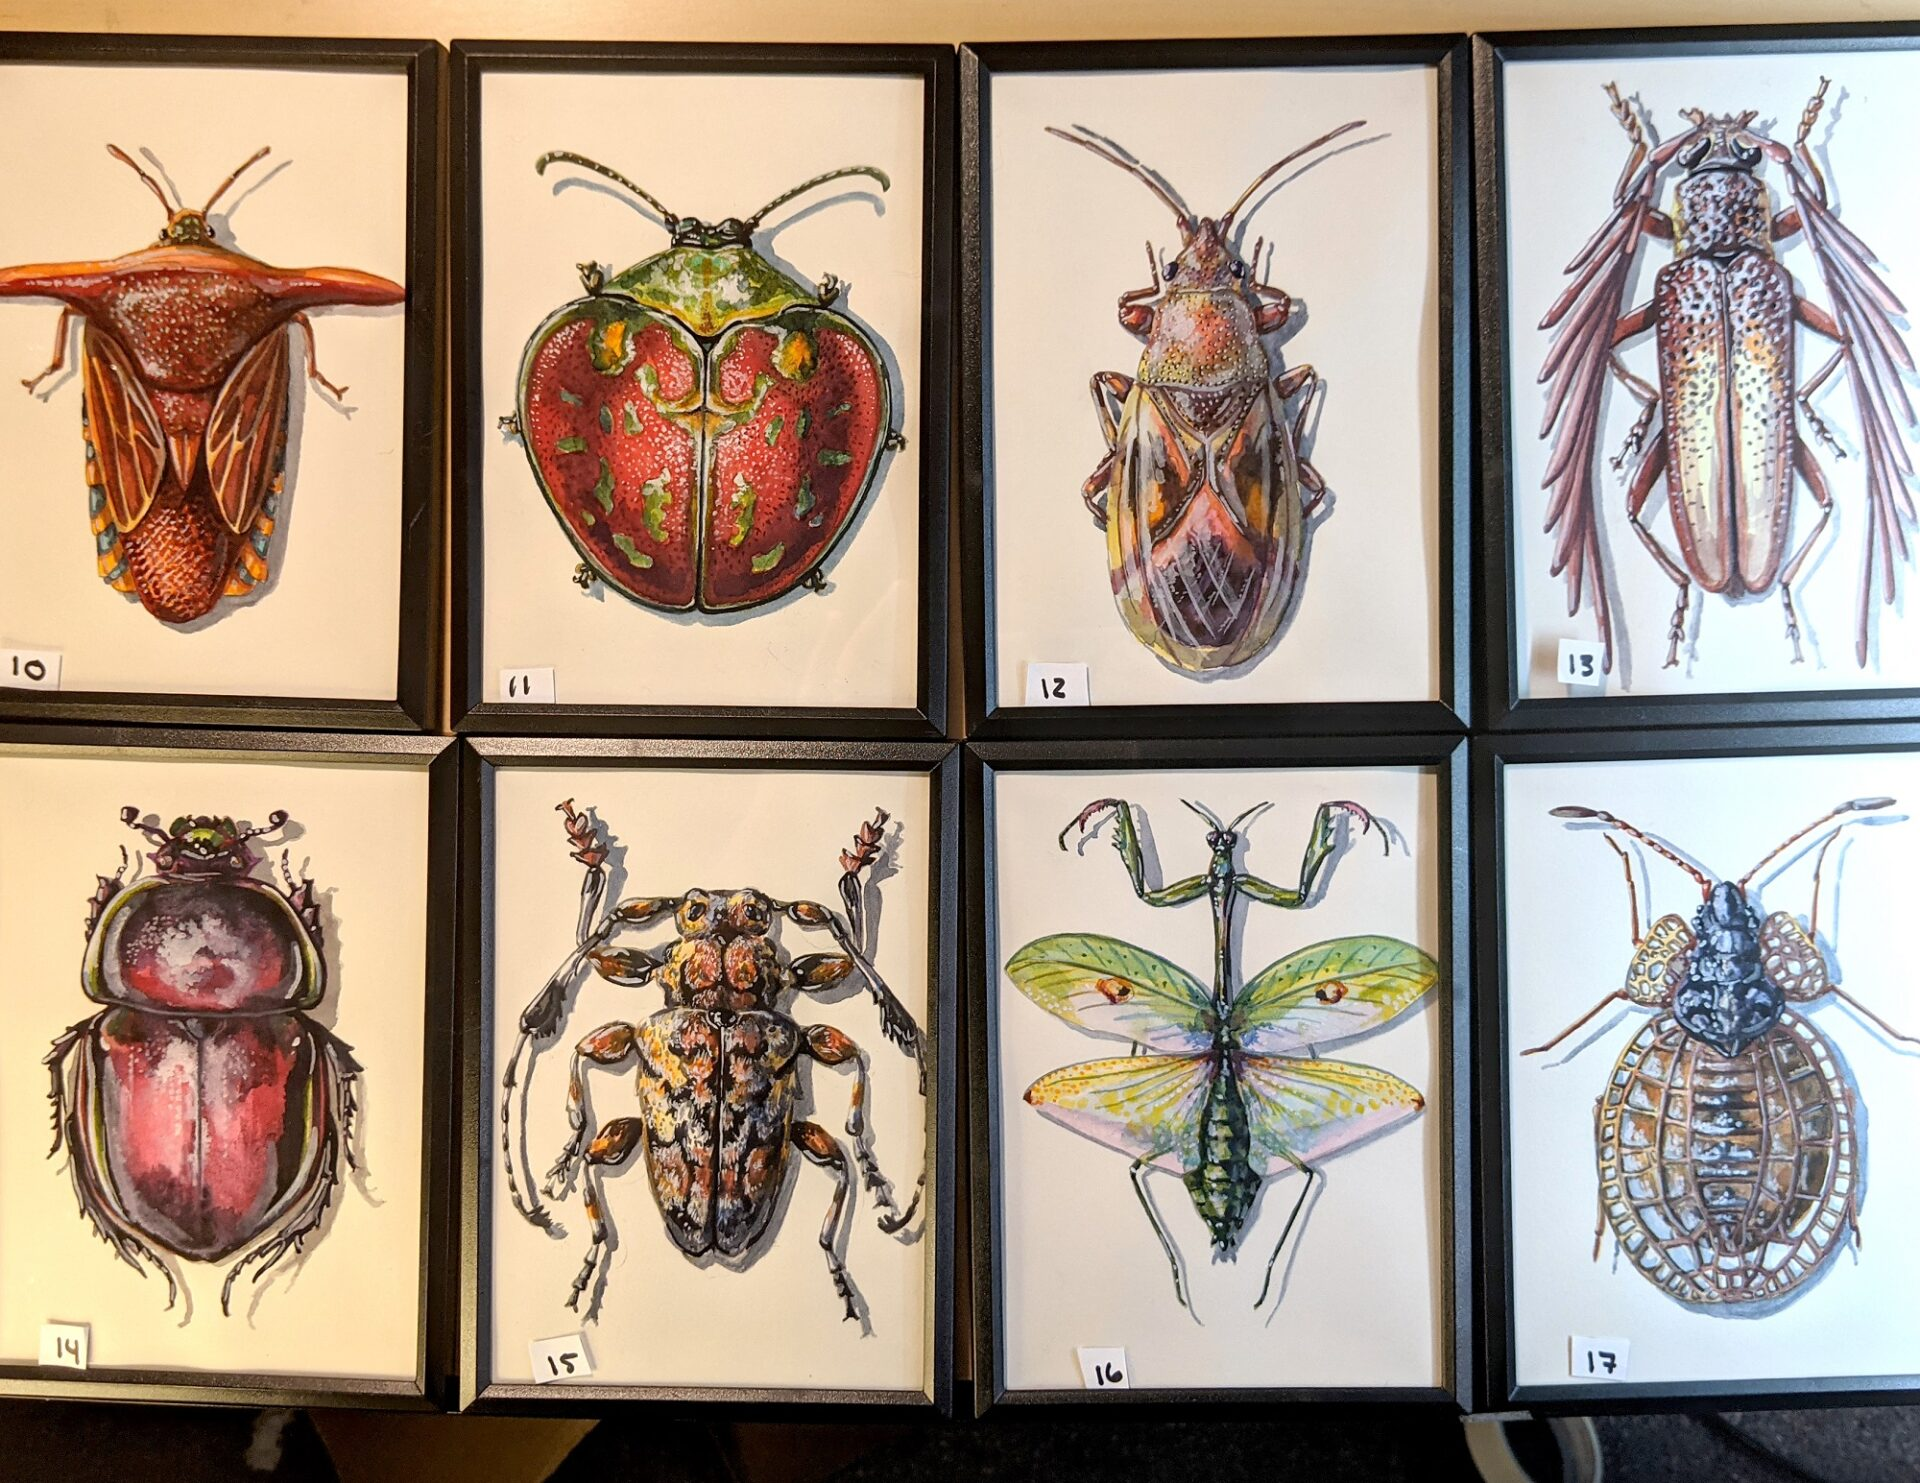 Small Insects 10 – 17 By Martha Iserman (Petals And Wings Exhibition)